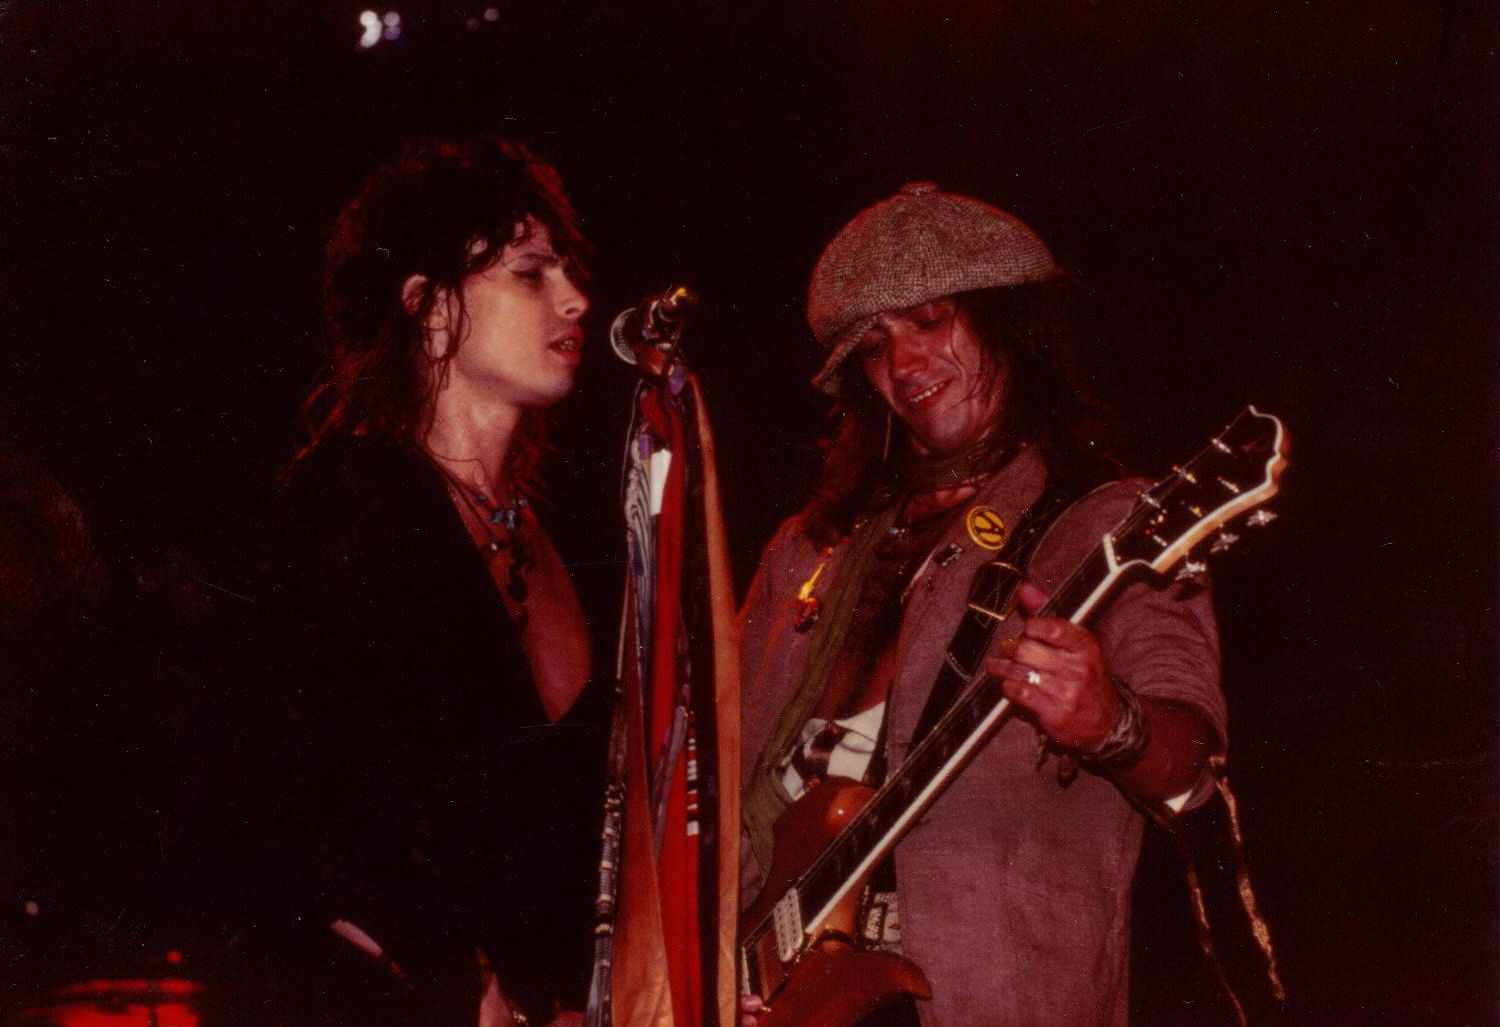 Jimmy Crespo and Steven Tyler - January 16, 1983 Las Vegas Convention Center, Las Vegas (NV)